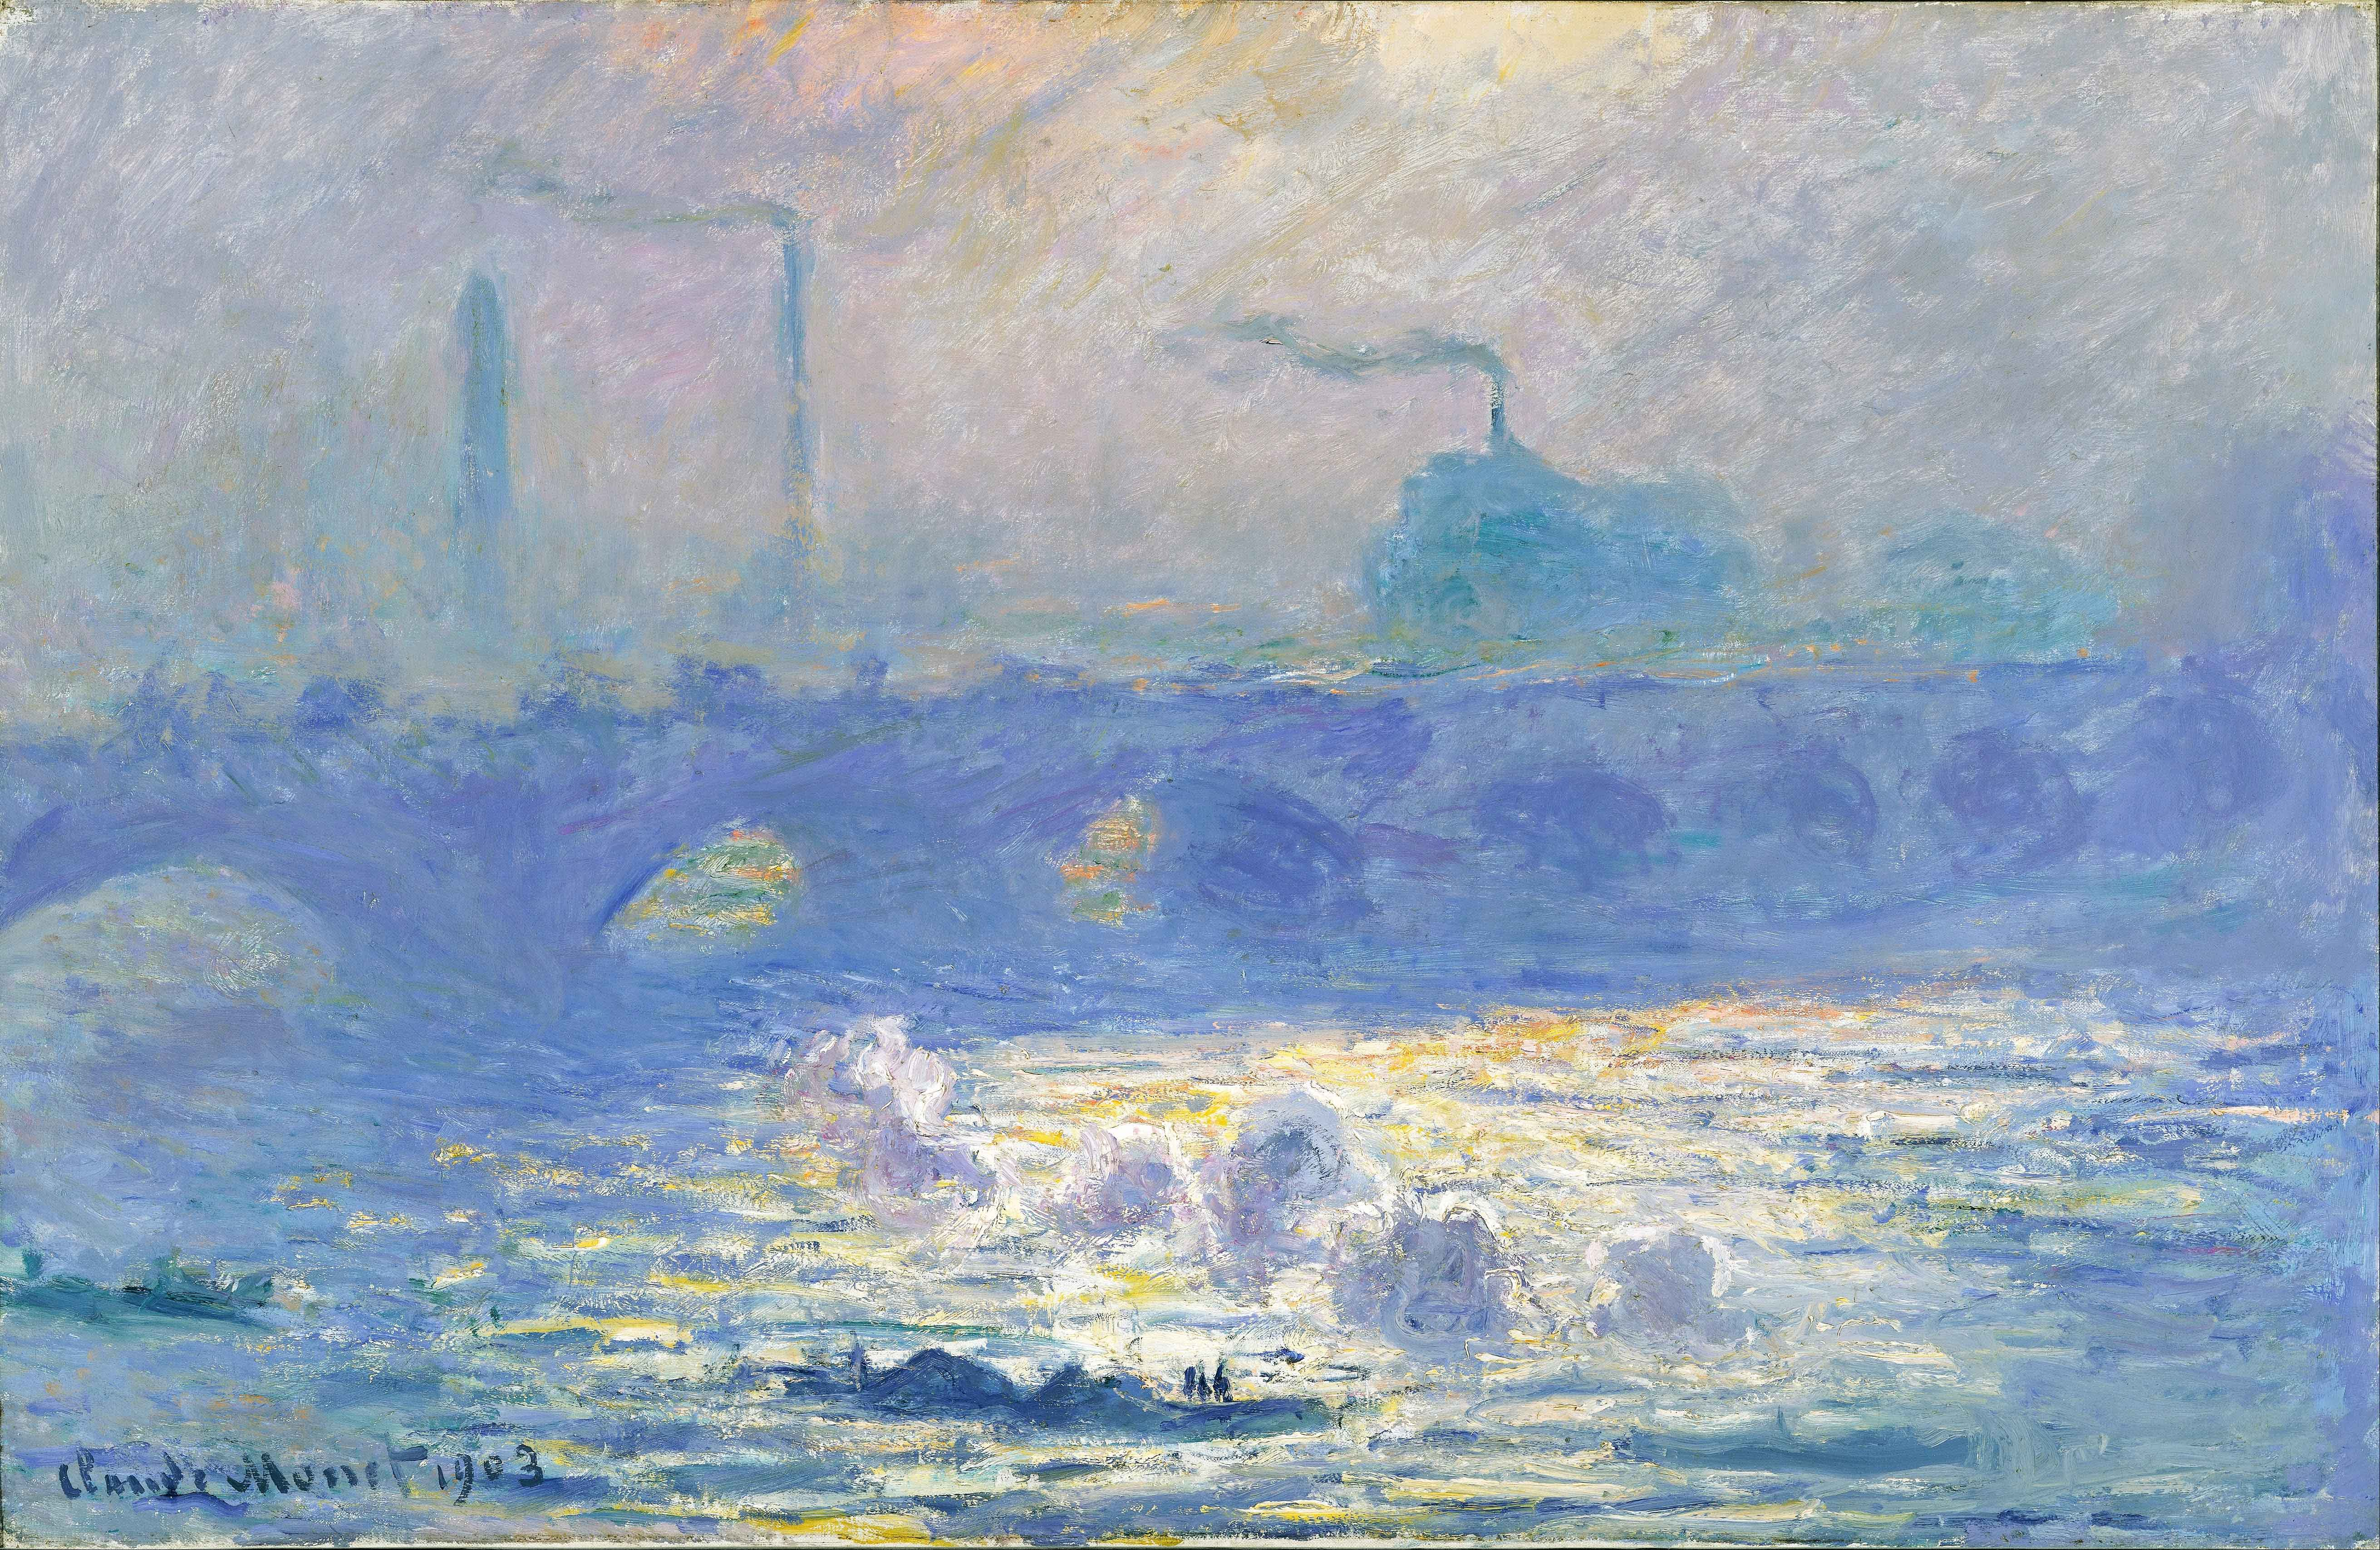 2Claude_Monet_Waterloo_Bridge_DenverArtMuseum